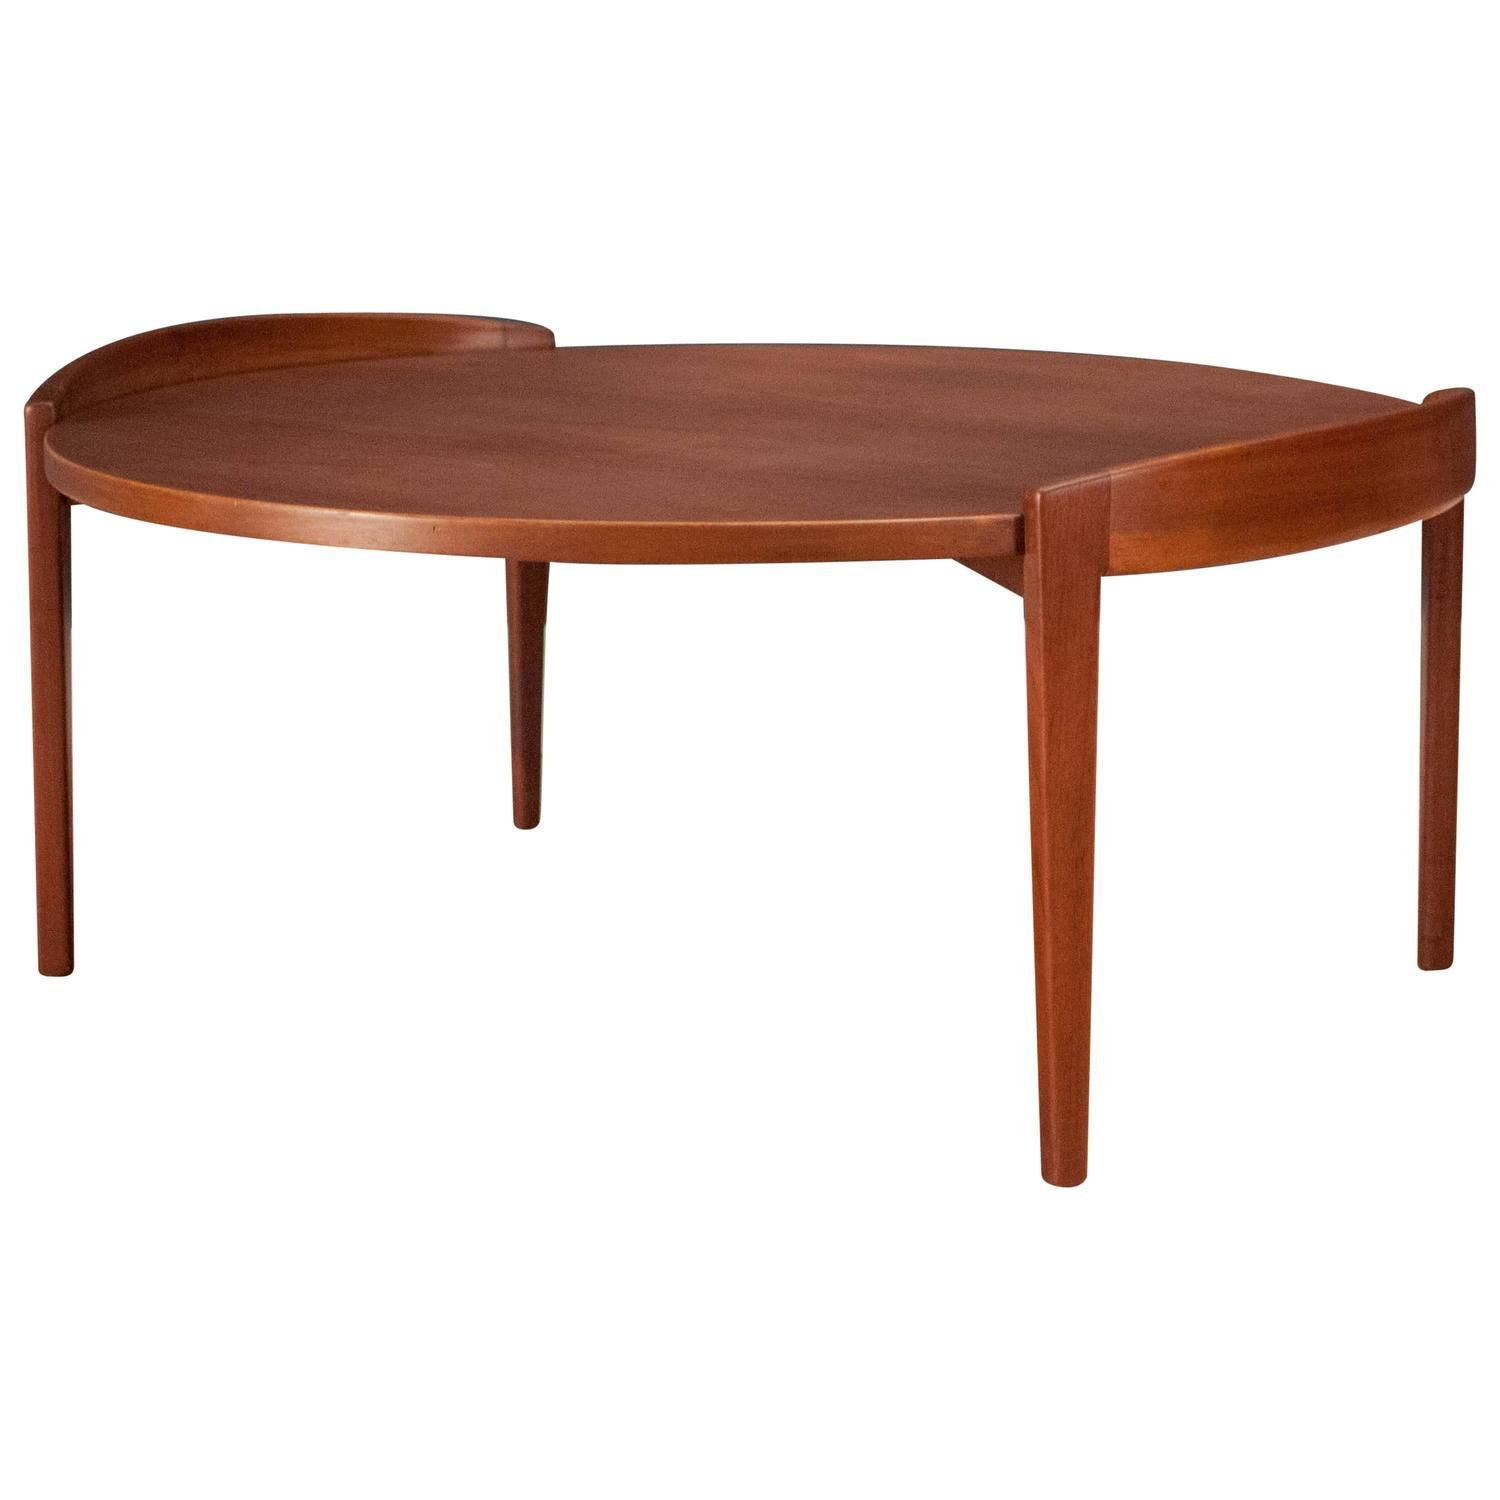 For Sale On  Mid Century Modern Coffee Table By Jens